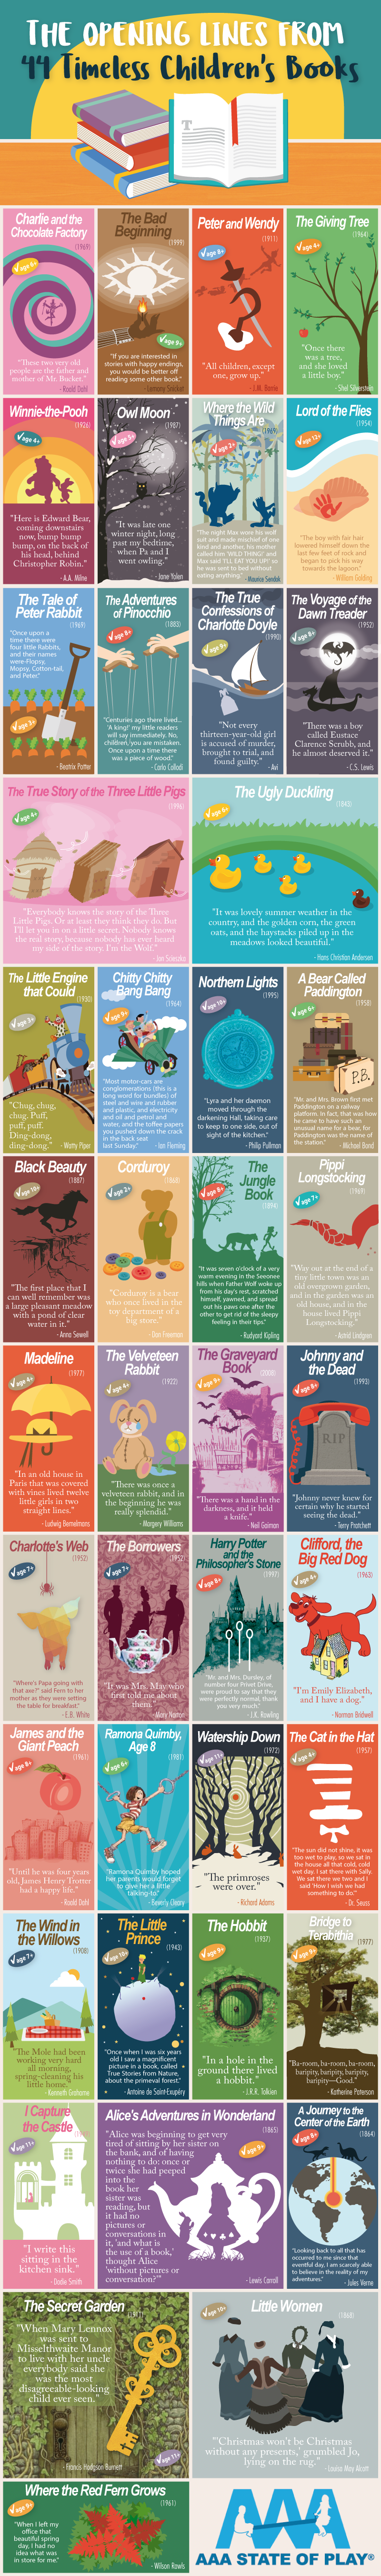 The Opening Lines from 44 Timeless Children's Books - AAAStateofPlay.com - Infographic